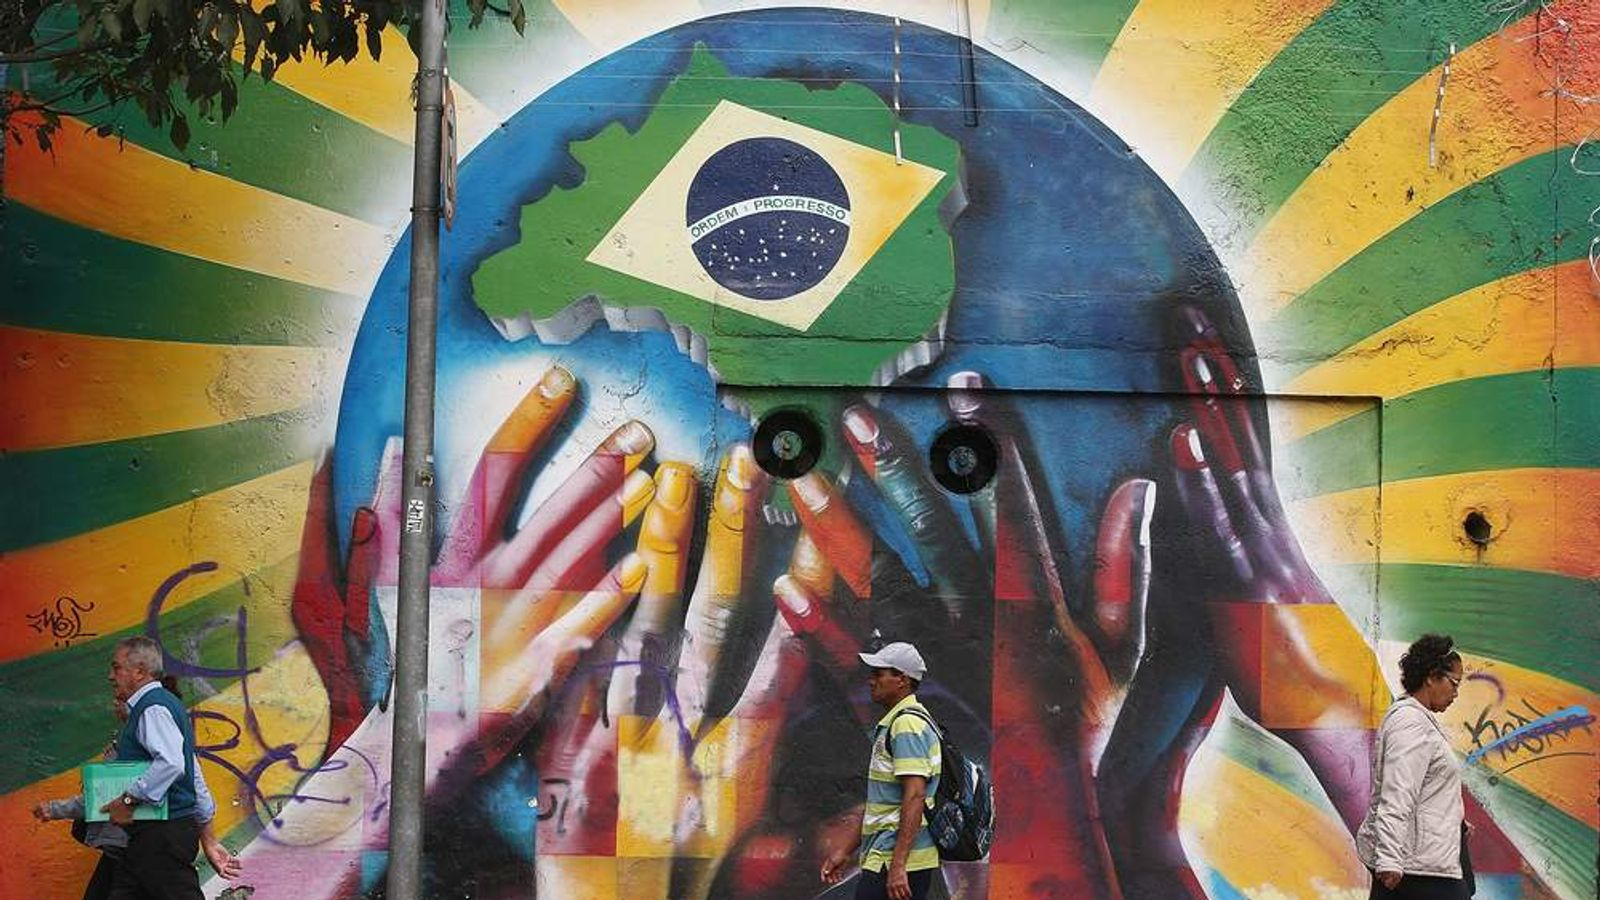 World Cup street graffiti in Sao Paulo